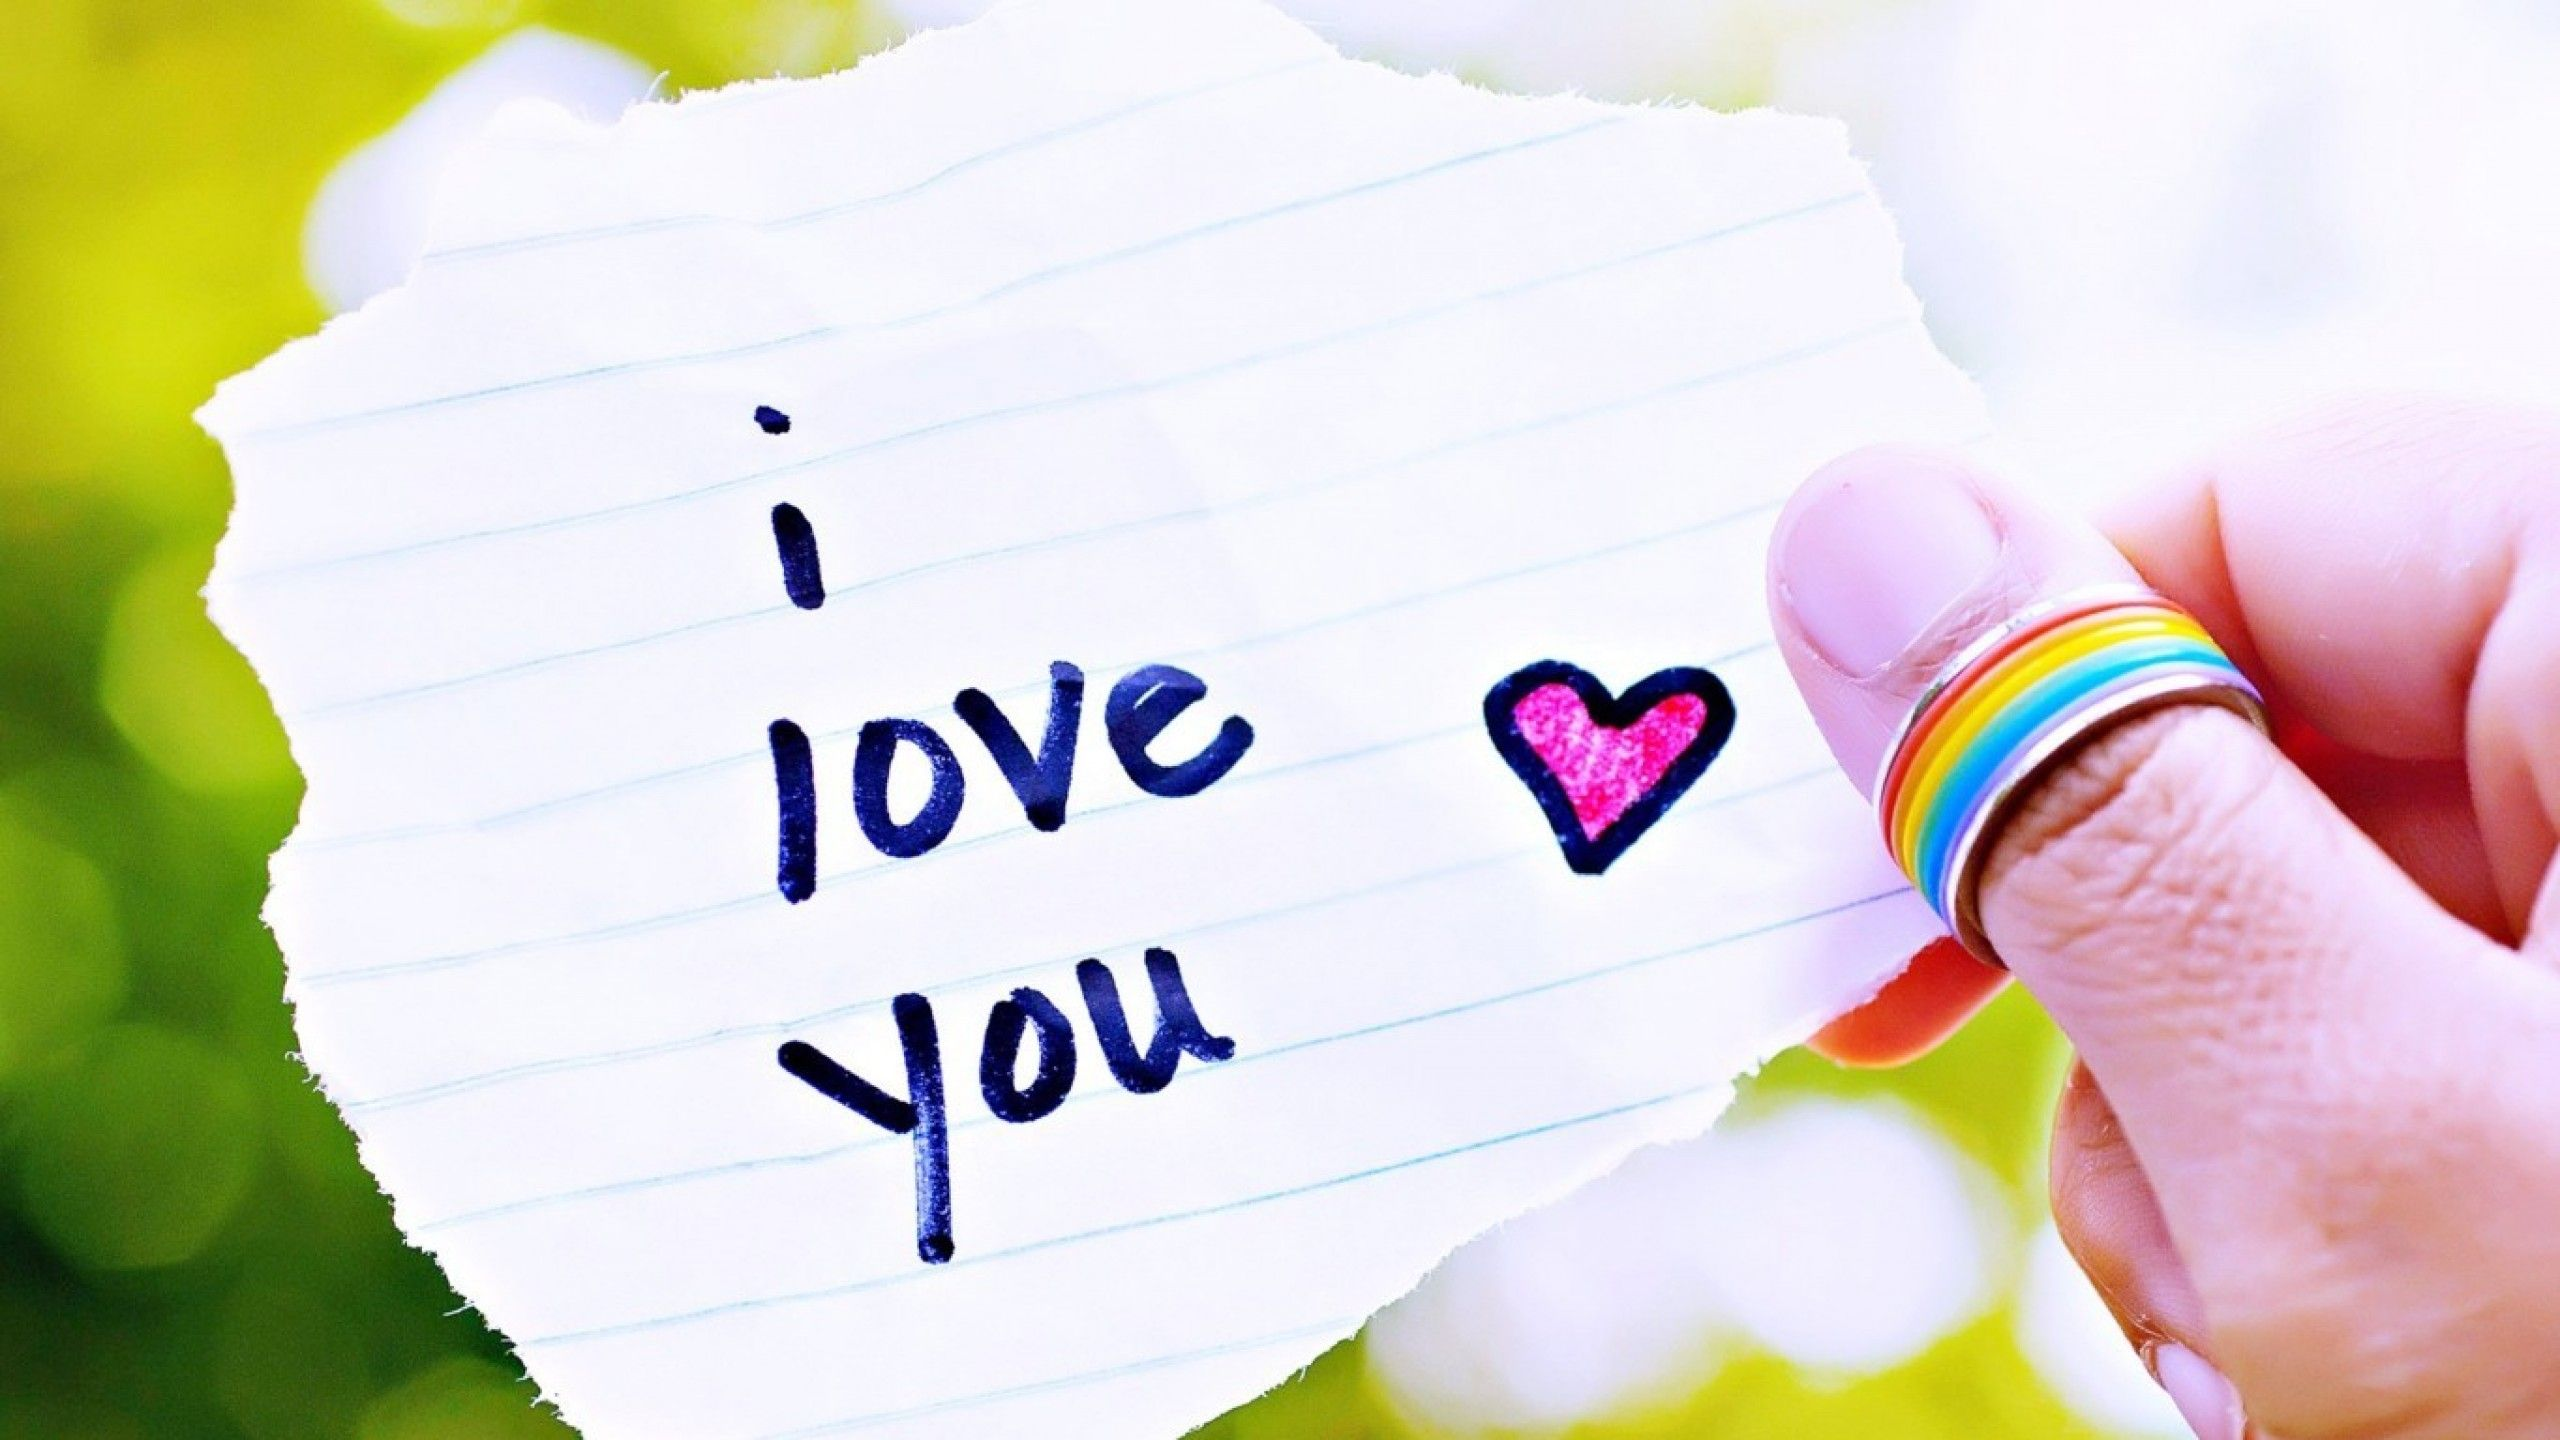 I Love You Images Happy Propose Day I Love You Images Happy Promise Day